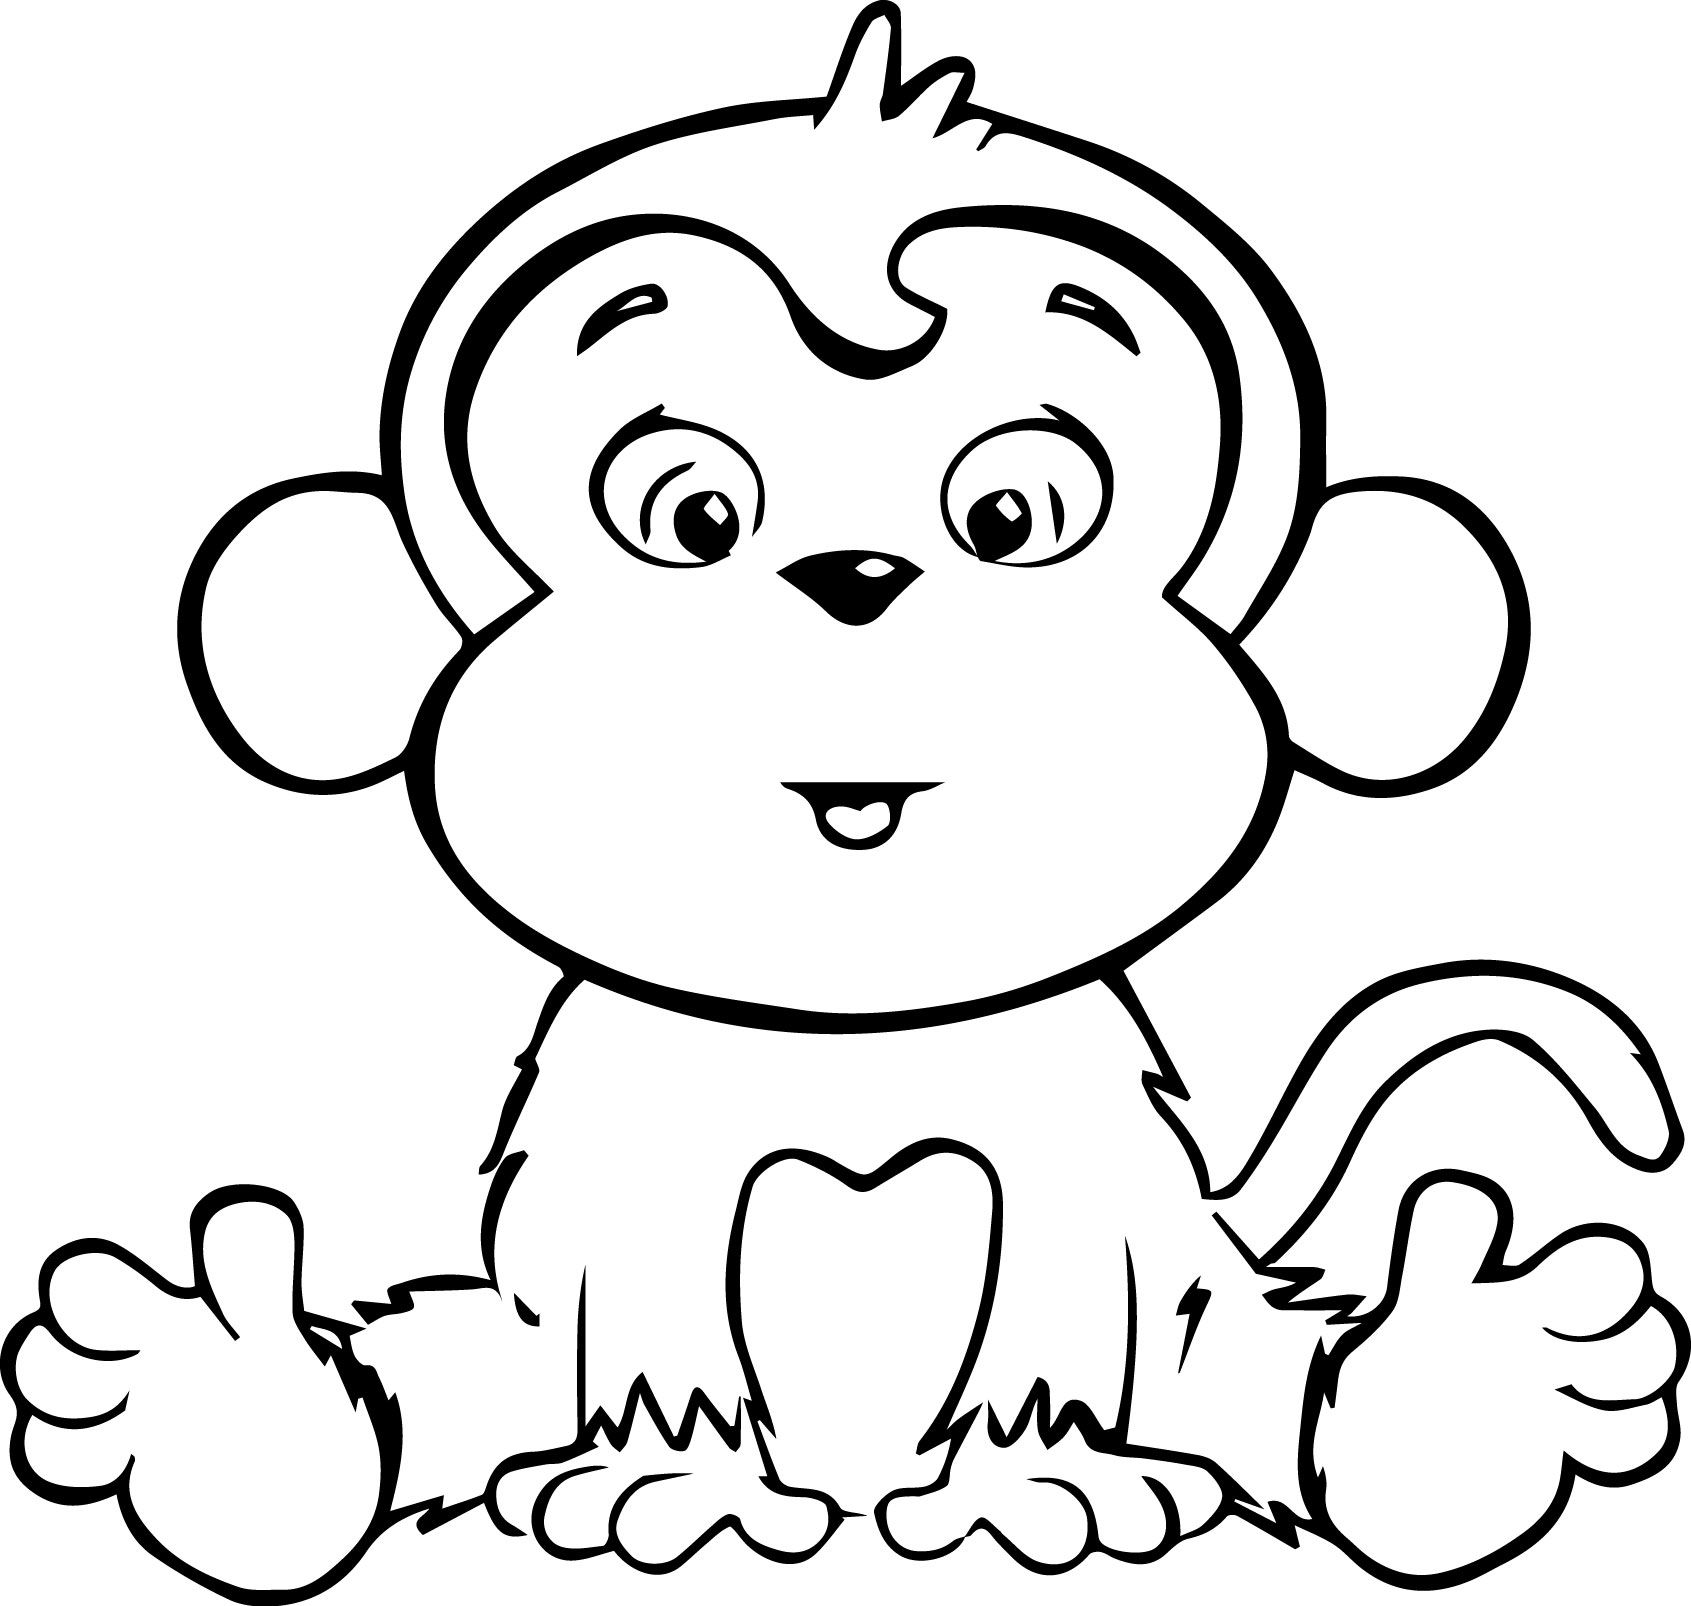 Is For Monkey Coloring Pages : Monkey Coloring Book Page Coloring Home